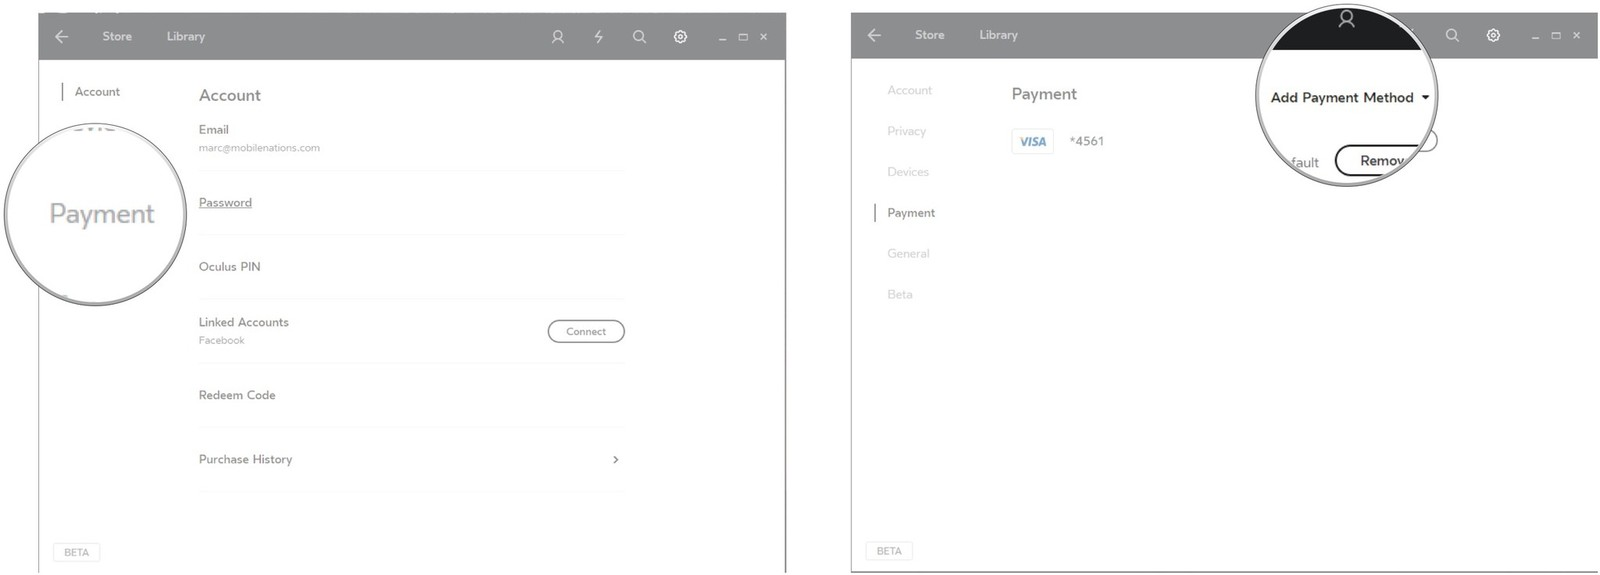 Click Payment. Click Add Payment Method.